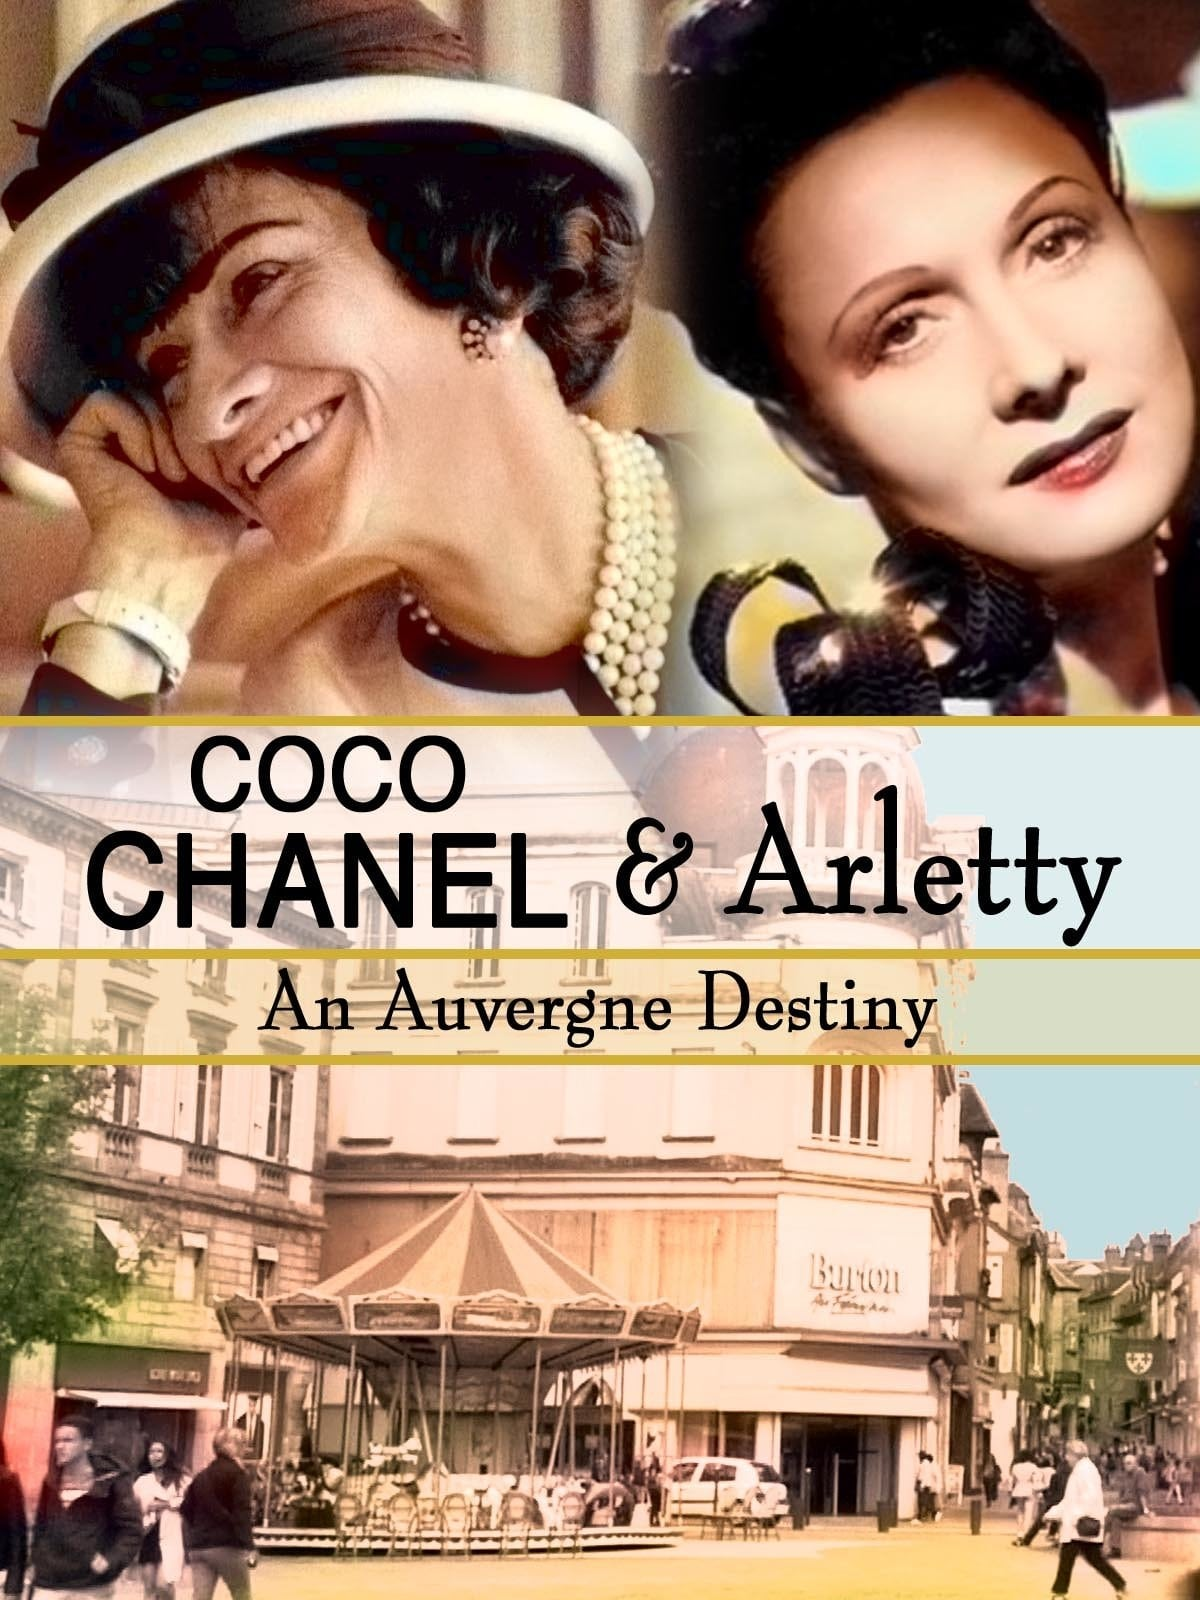 Coco Chanel & Arletty: An Auvergne Destiny on FREECABLE TV